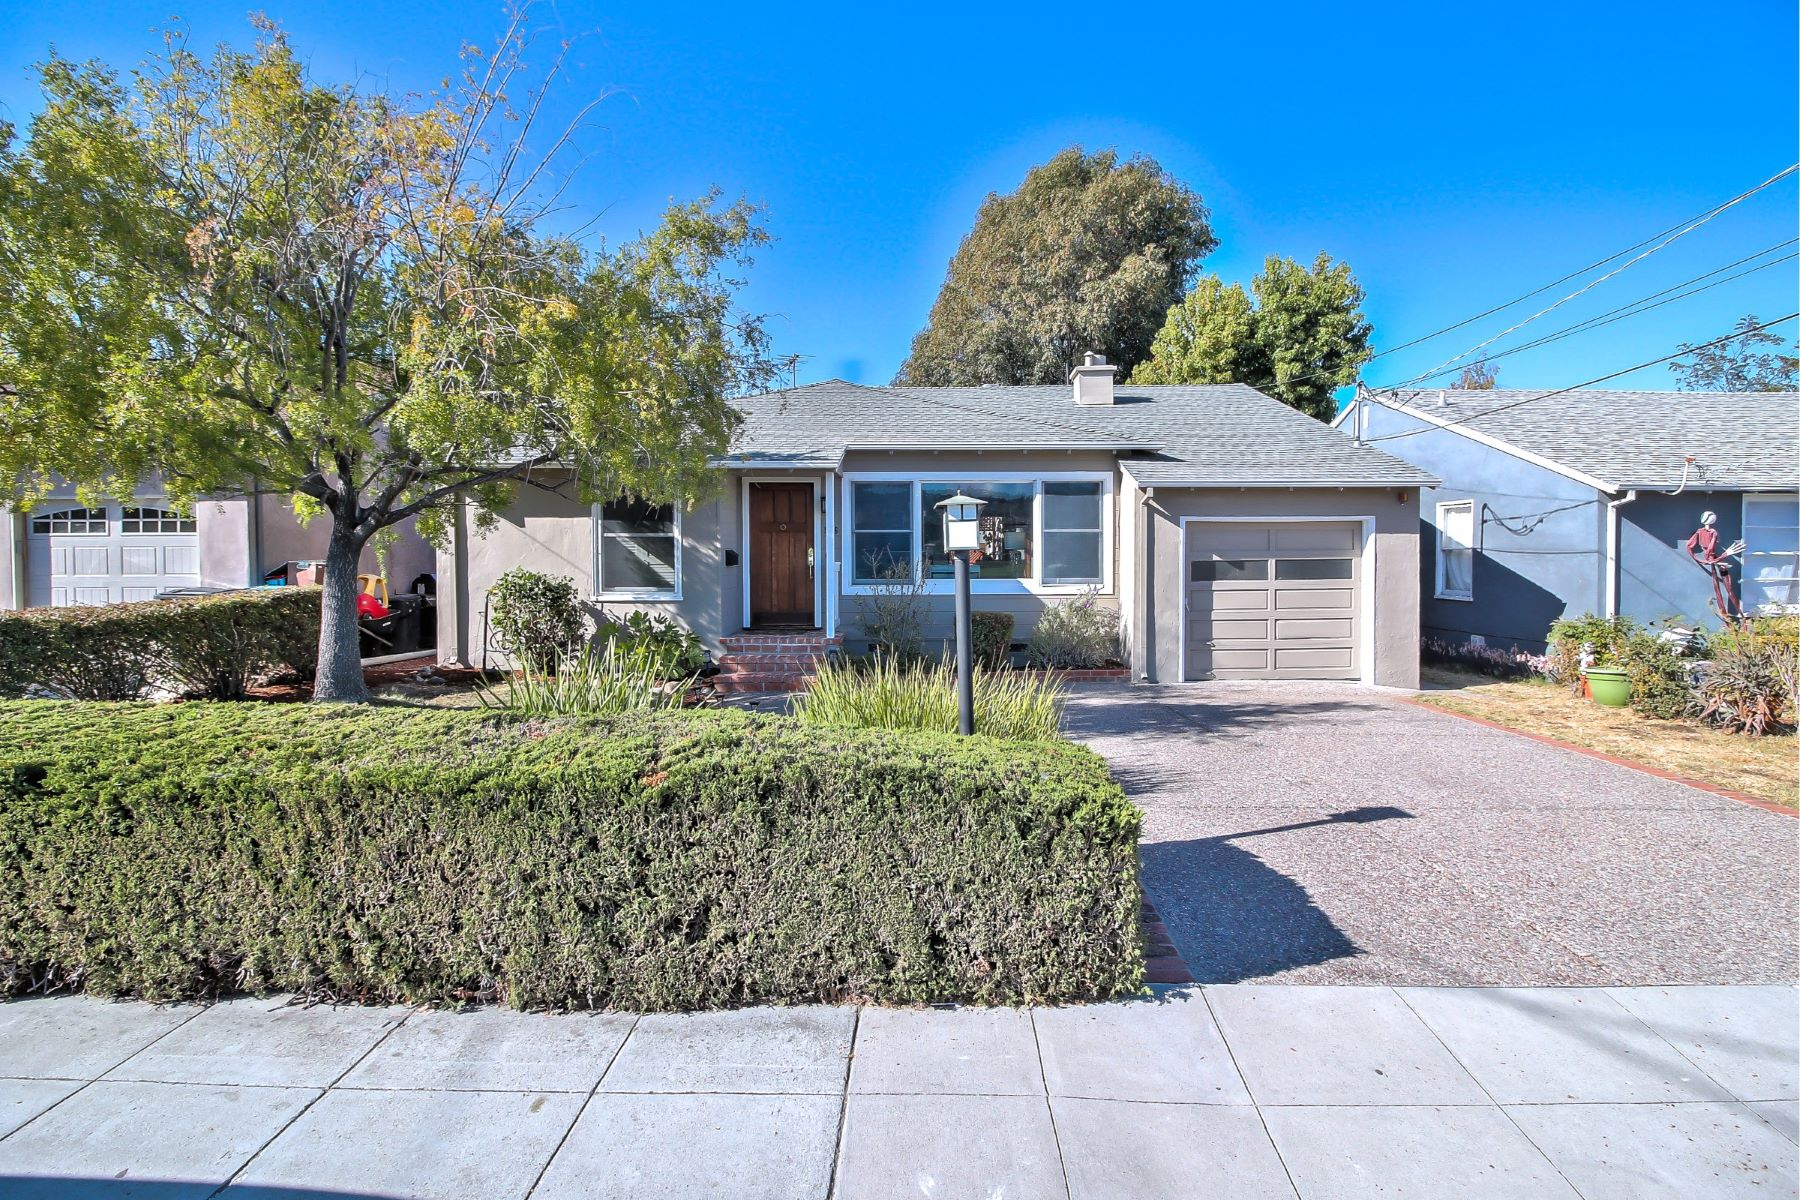 Single Family Home for Active at Sunny San Mateo Charmer 556 31st Avenue San Mateo, California 94403 United States